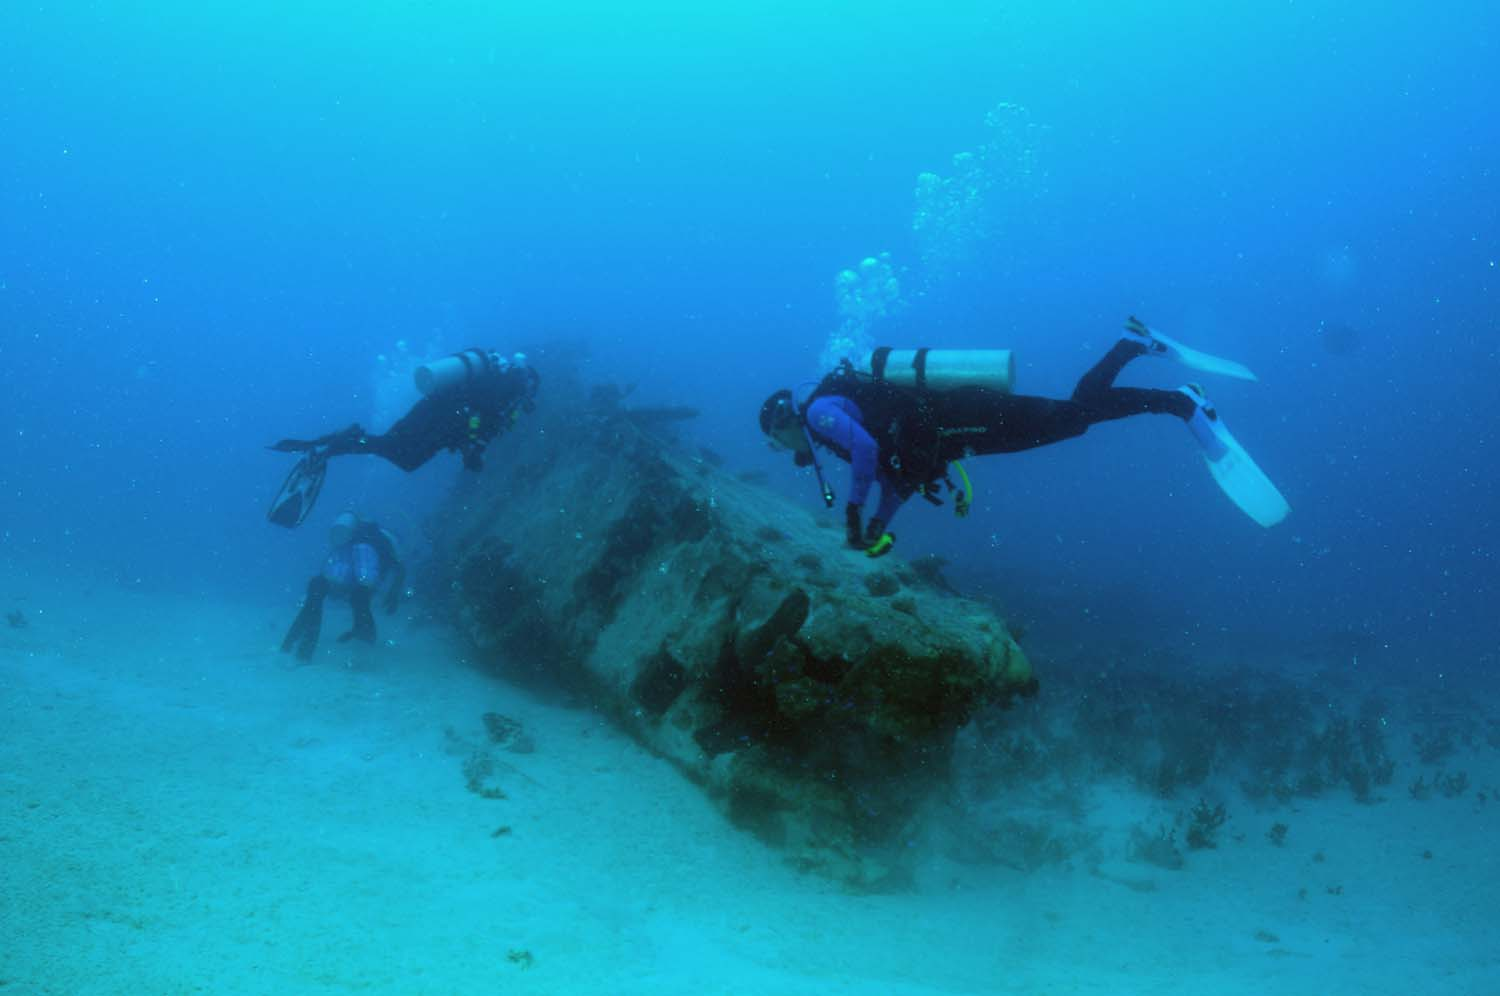 Knowing the story behind each wreck is what is important, as the diver is able to reconstruct the story behind the rusted metal